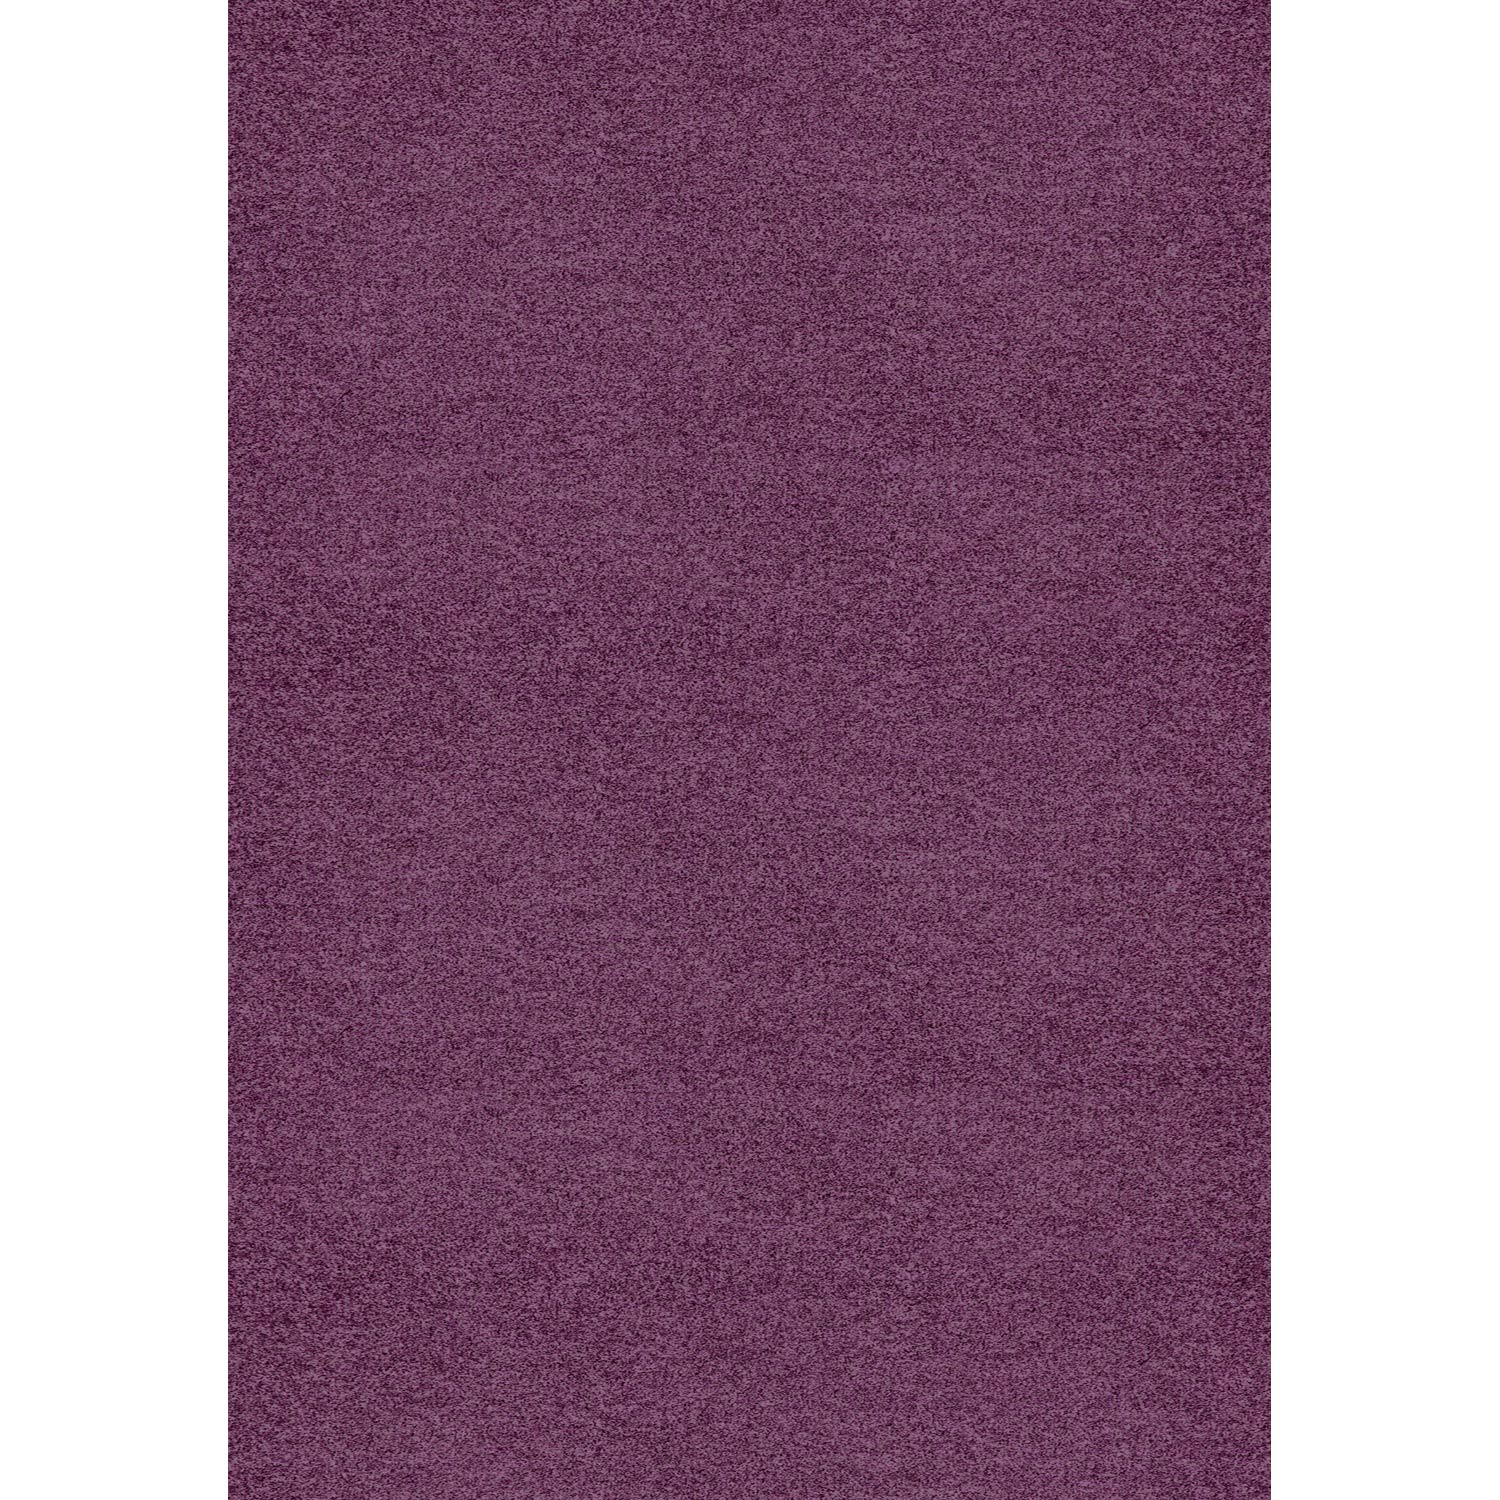 tapis shaggy lizzy violet 115x60 cm leroy merlin. Black Bedroom Furniture Sets. Home Design Ideas